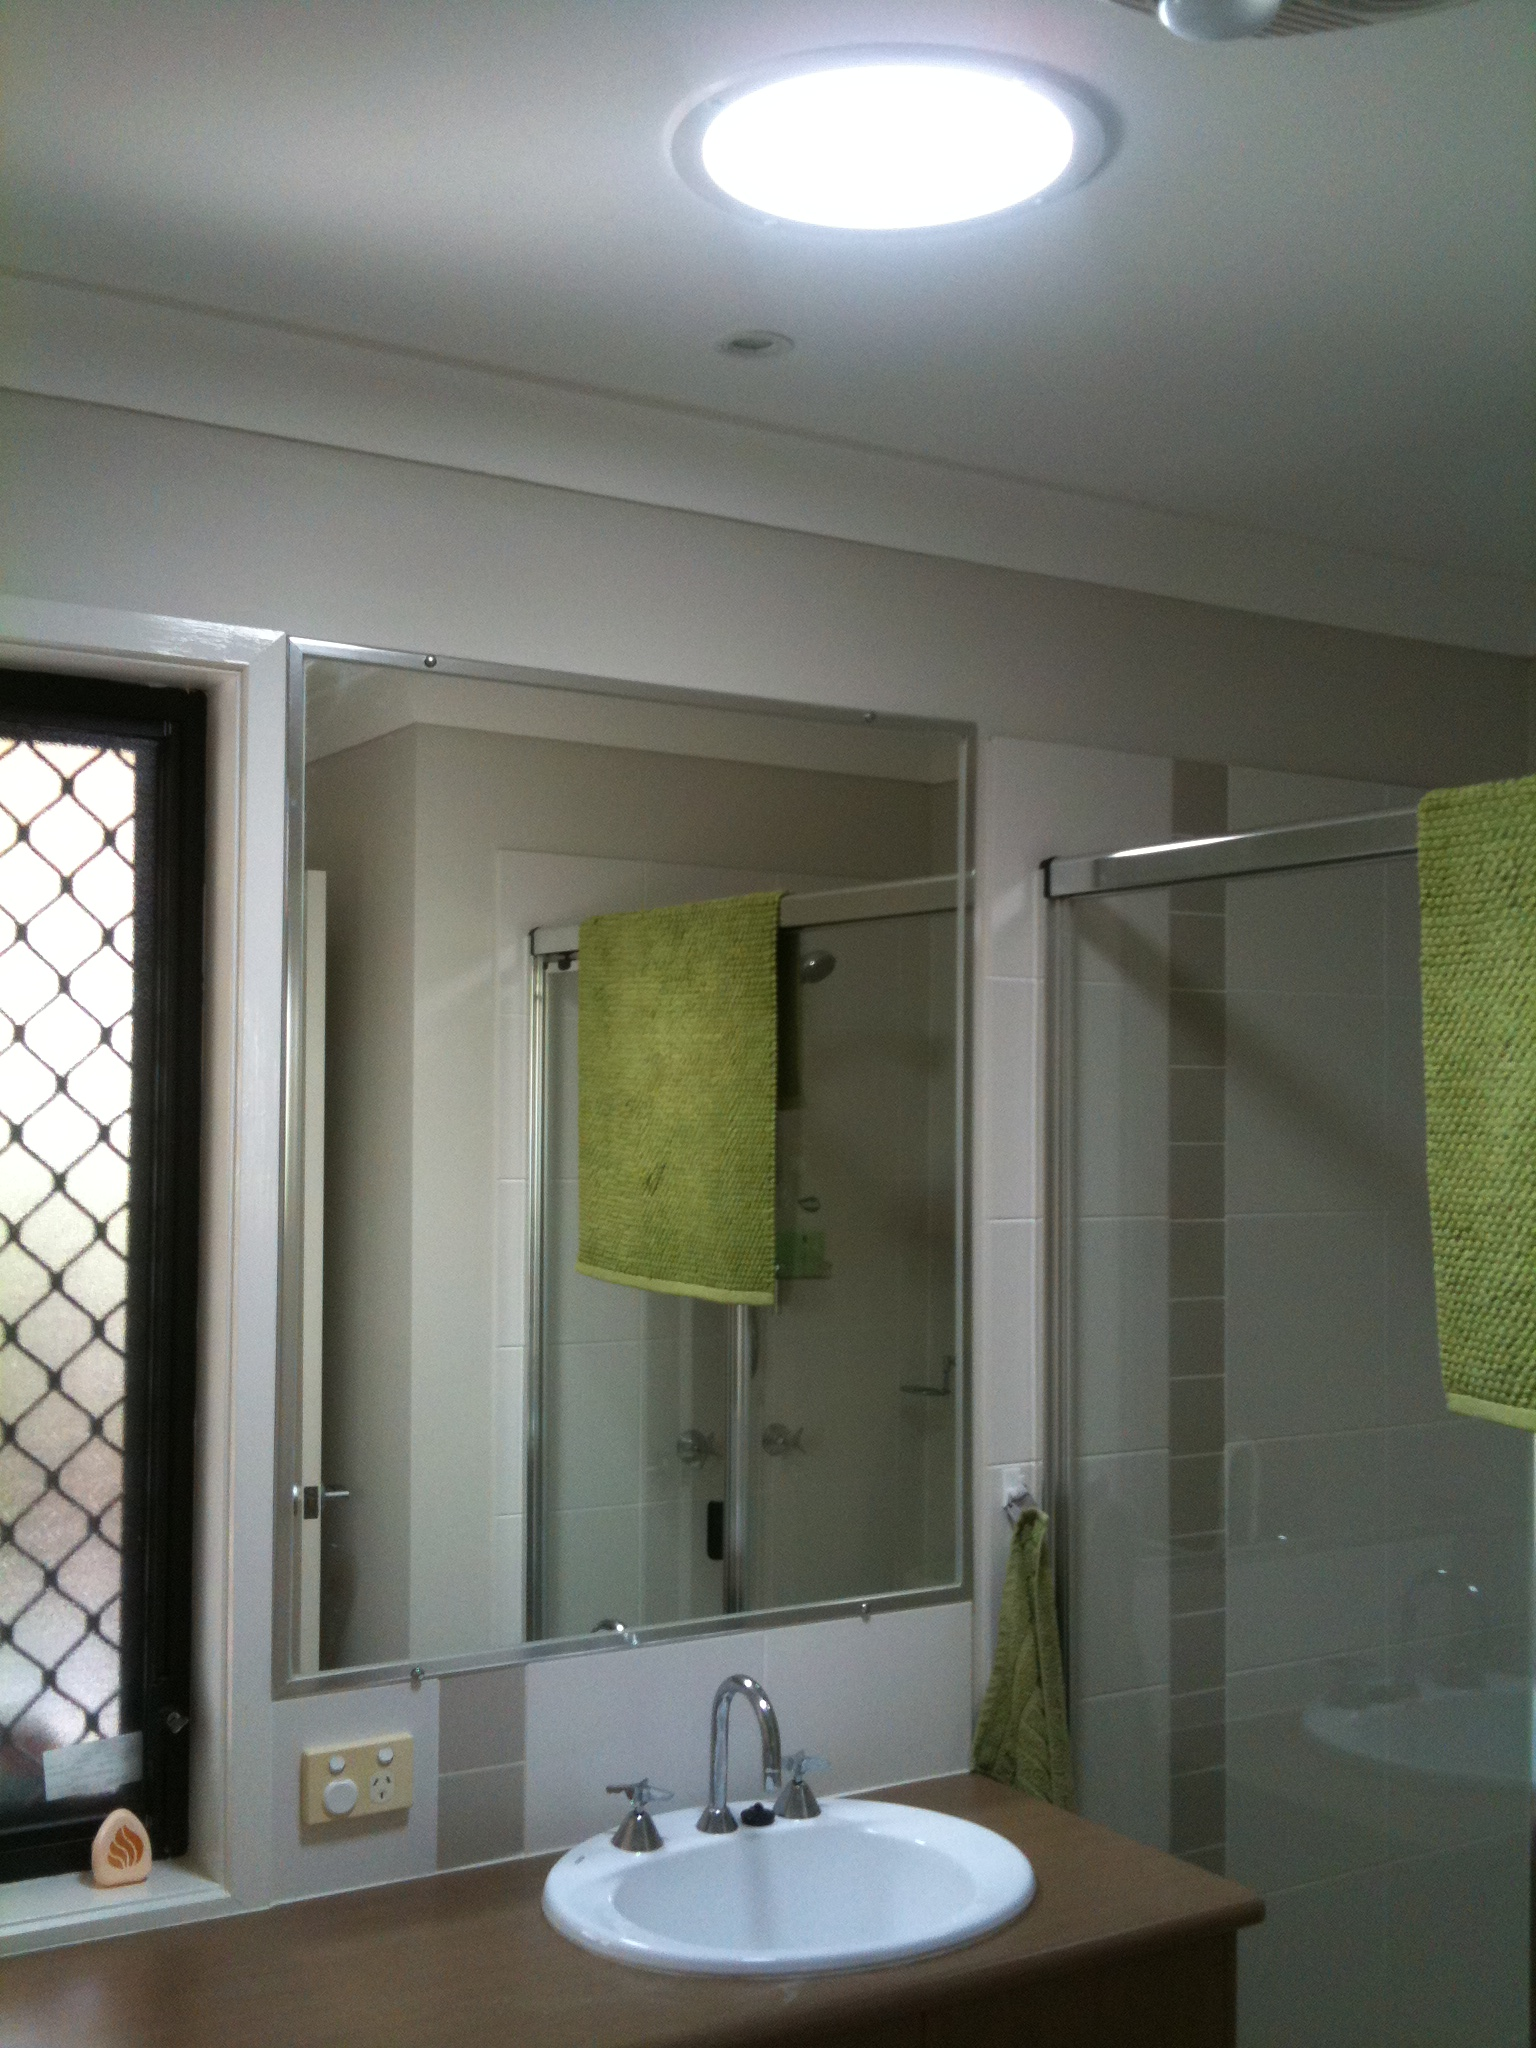 Skylights Brisbane Prices Starting From Just 394 – Skylight in Bathroom